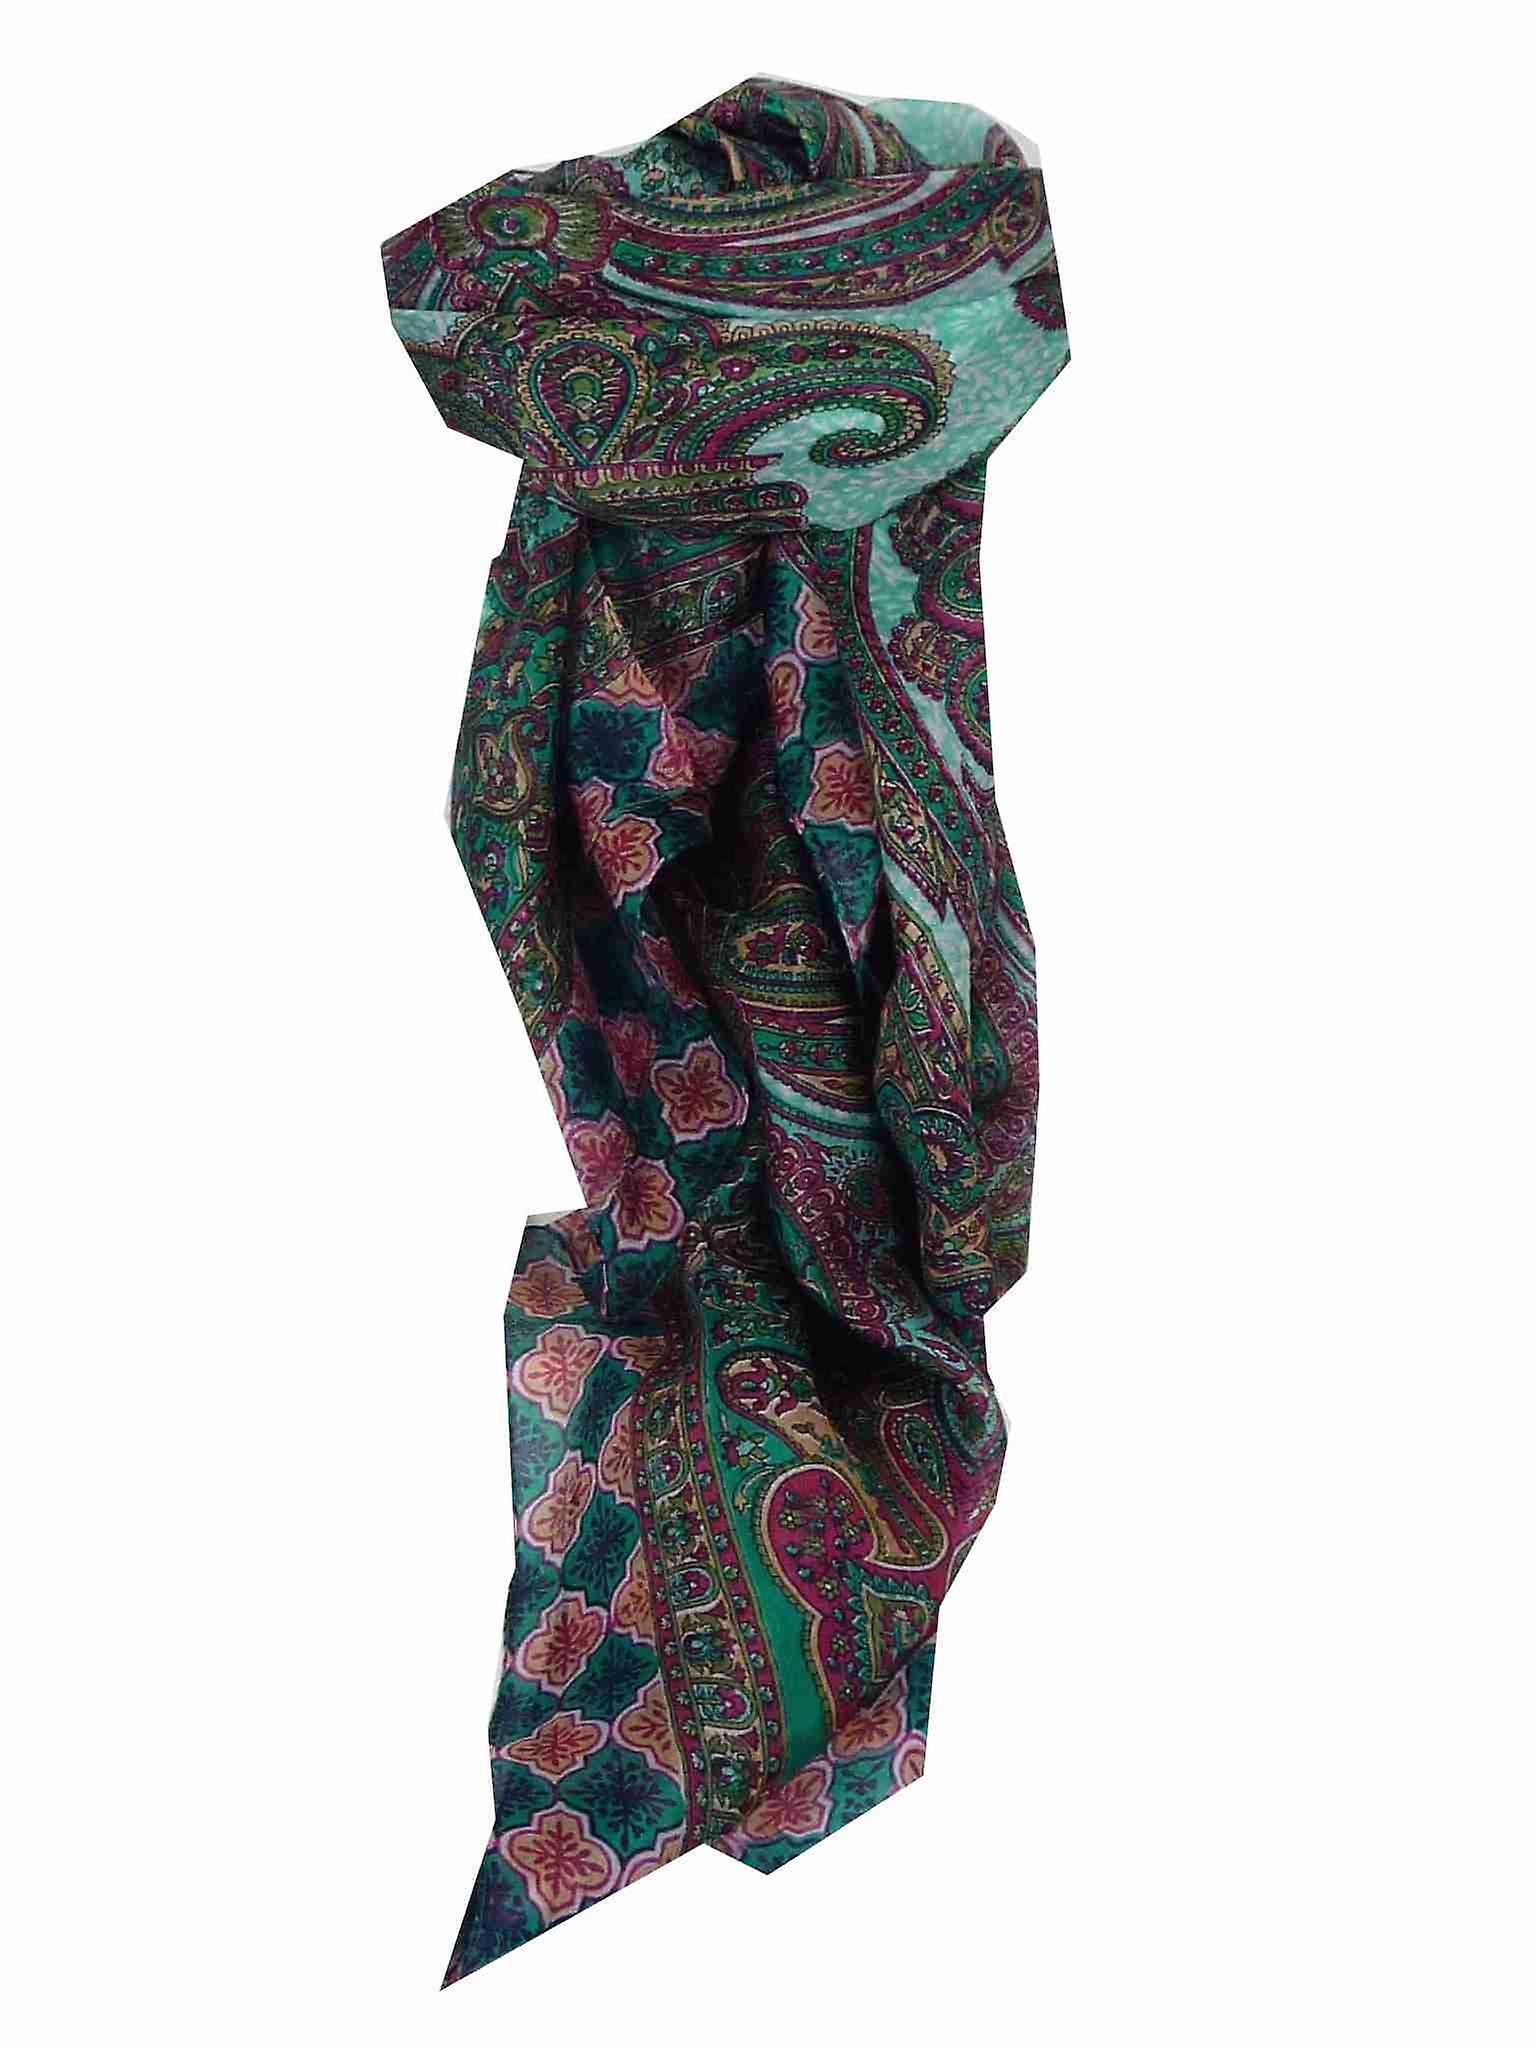 Mulberry Silk Traditional Square Scarf Bibi Teal by Pashmina & Silk